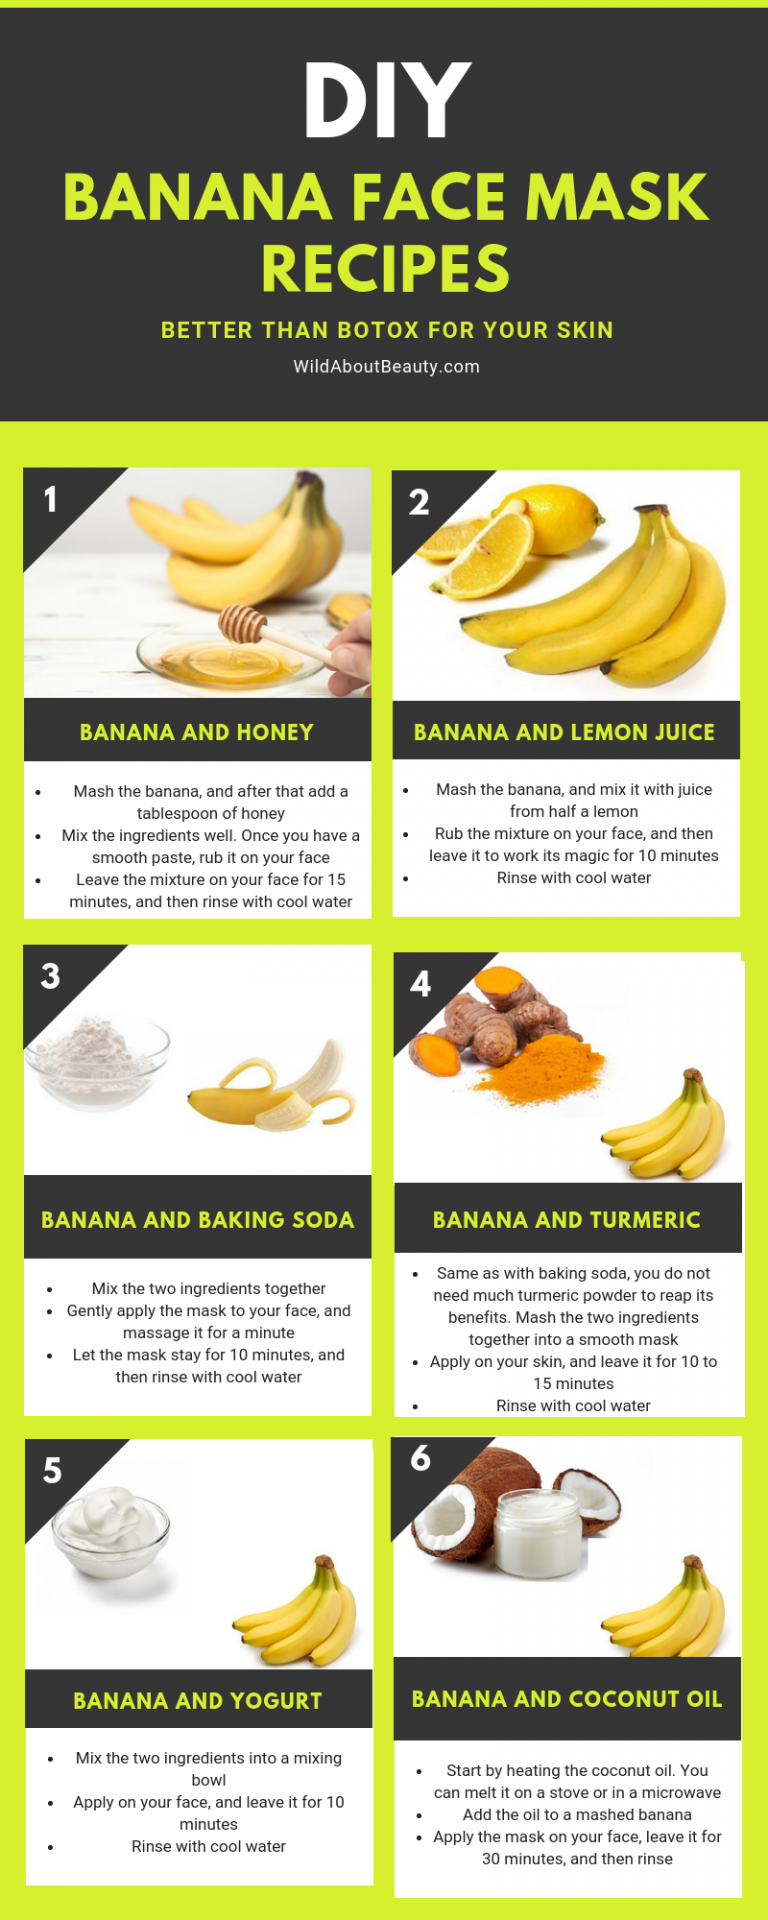 banana face mask recipes #SkinPeelMask in 2020 | Banana face